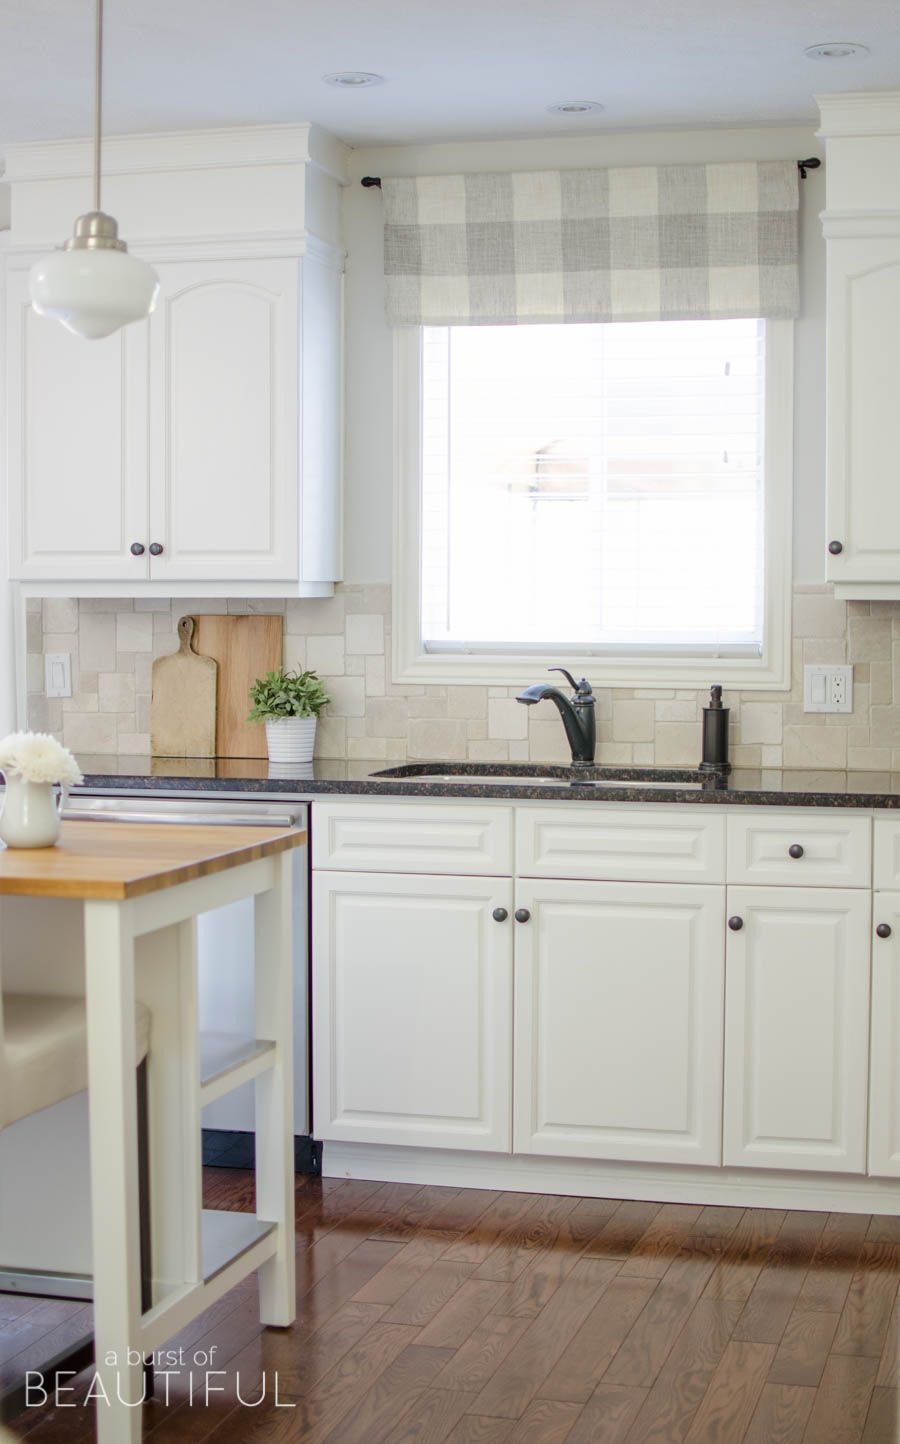 Kitchen Window Valance Remodeling Charlotte Nc Farmhouse Tutorial Home Decor A Made From Neutral Buffalo Check Fabric Compliments This Simple Perfectly Visit Aburstofbeautiful Com For The Full